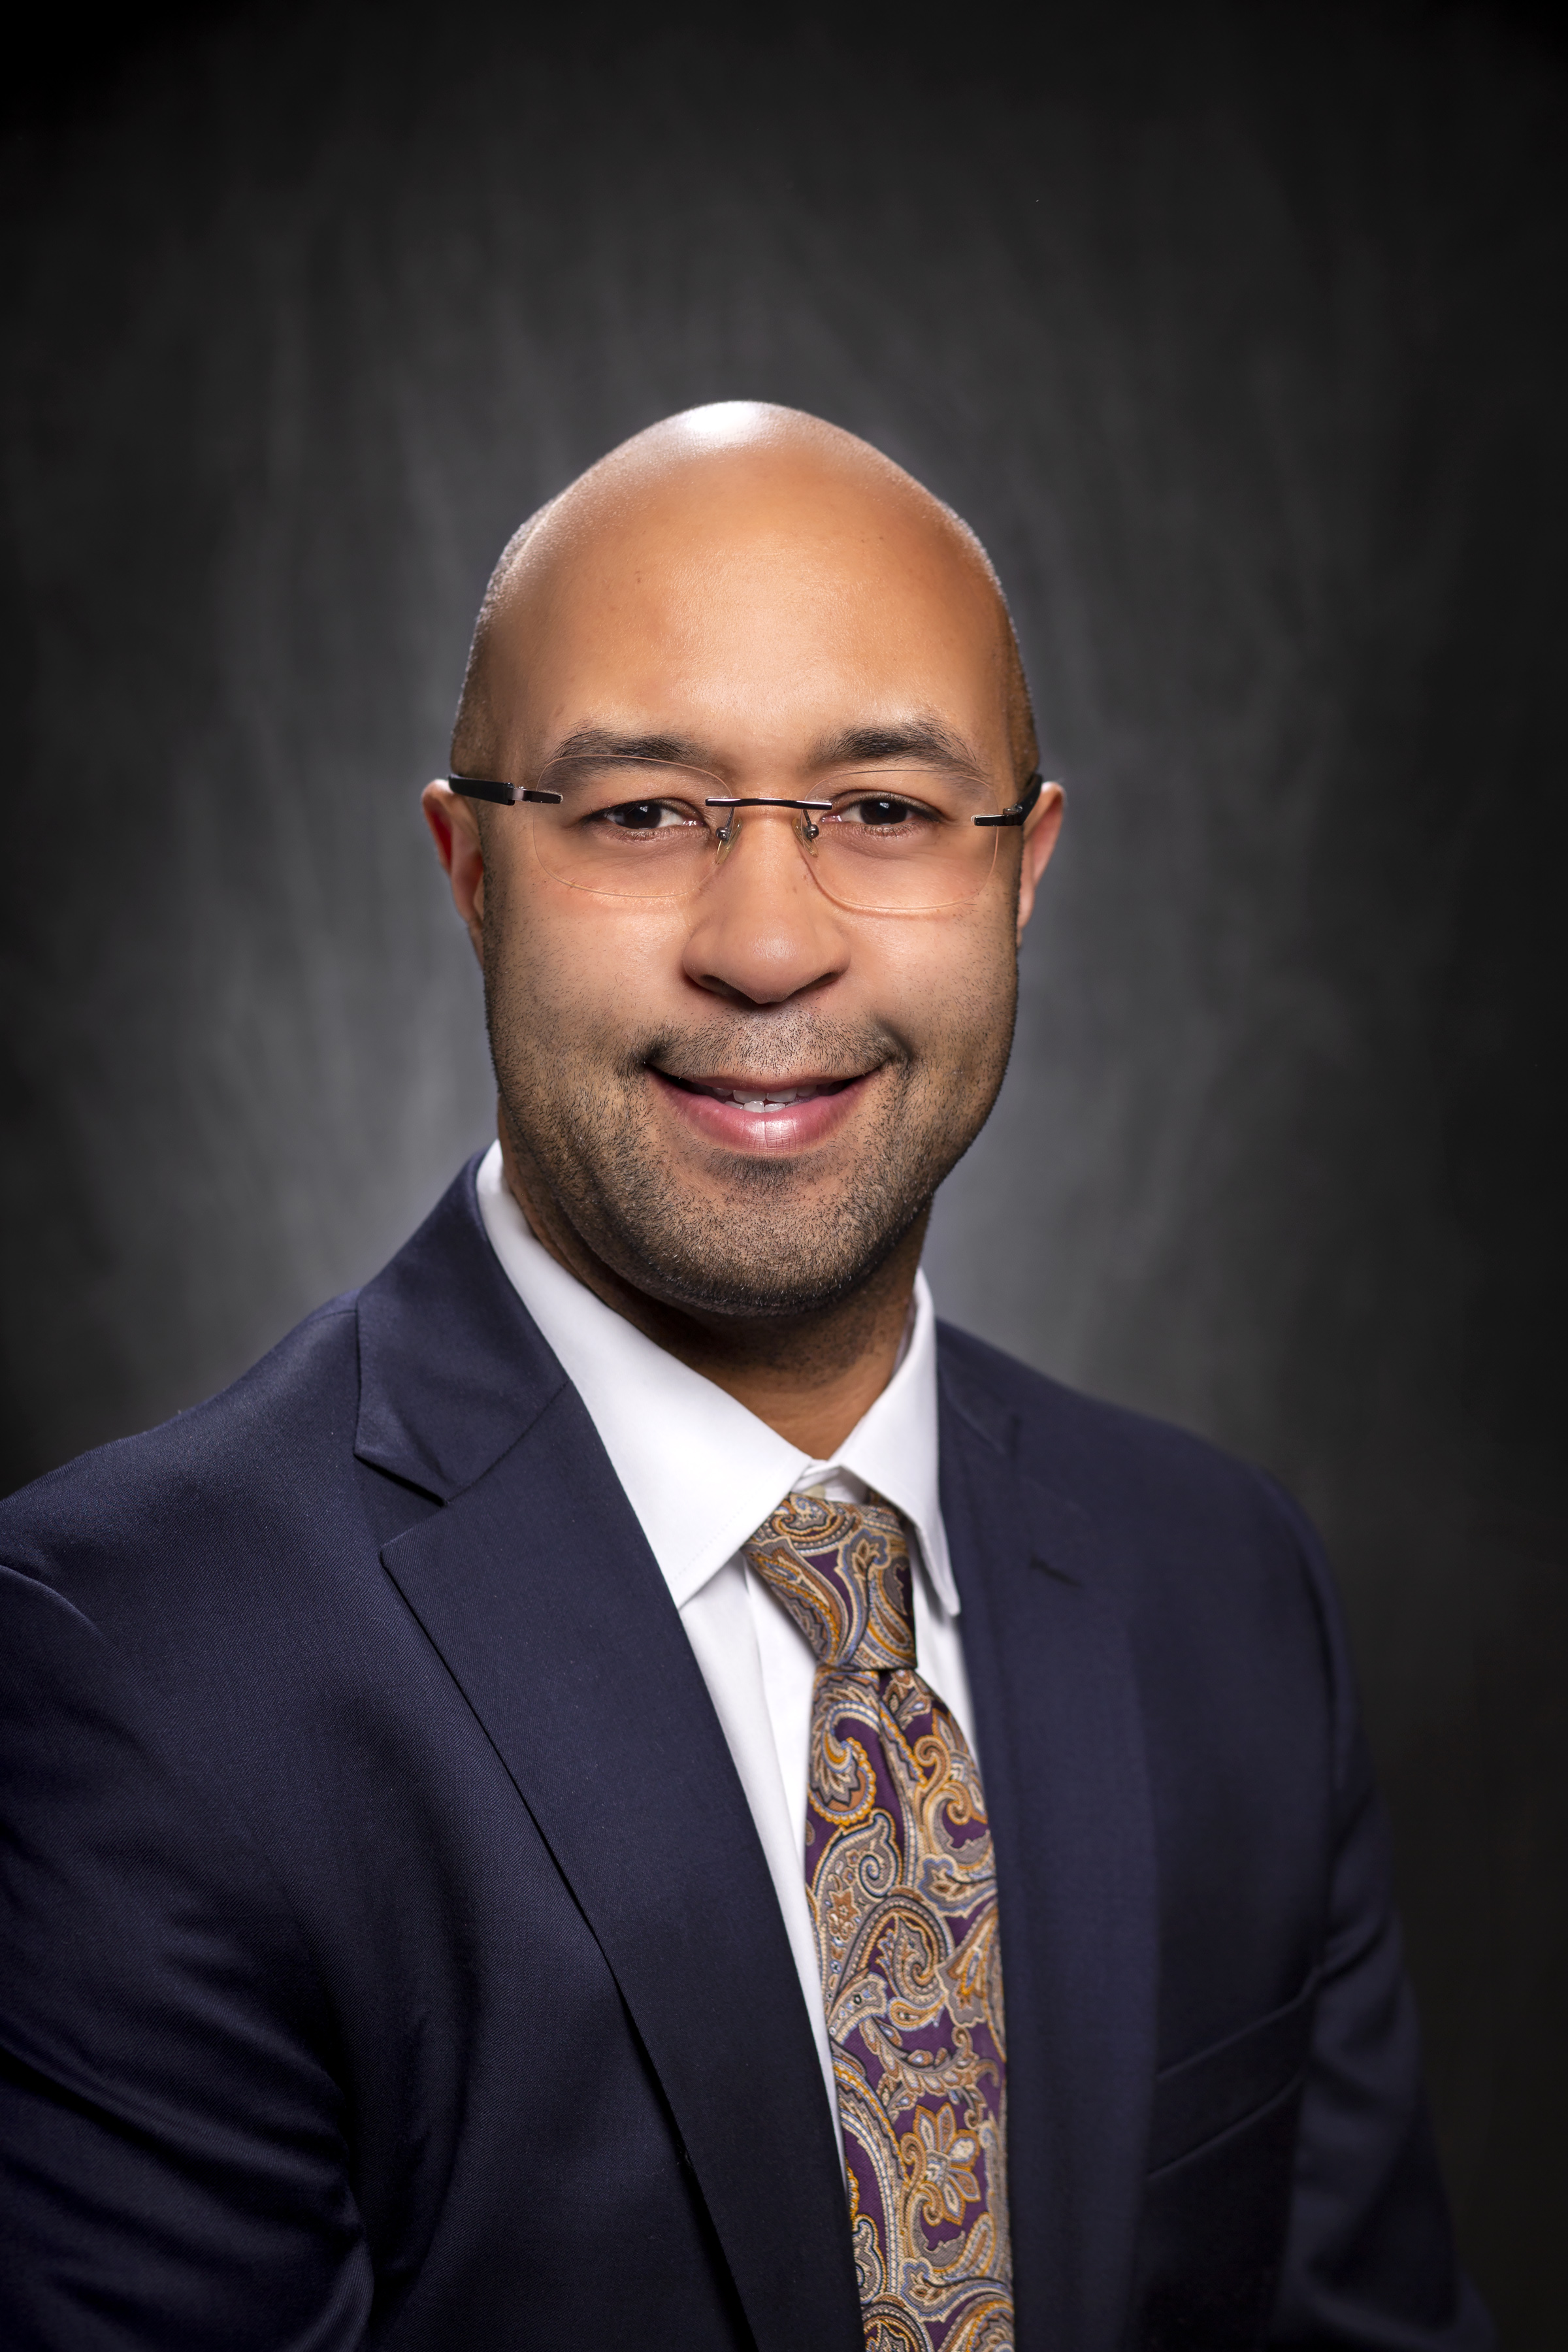 Dr. Corey G. Foster